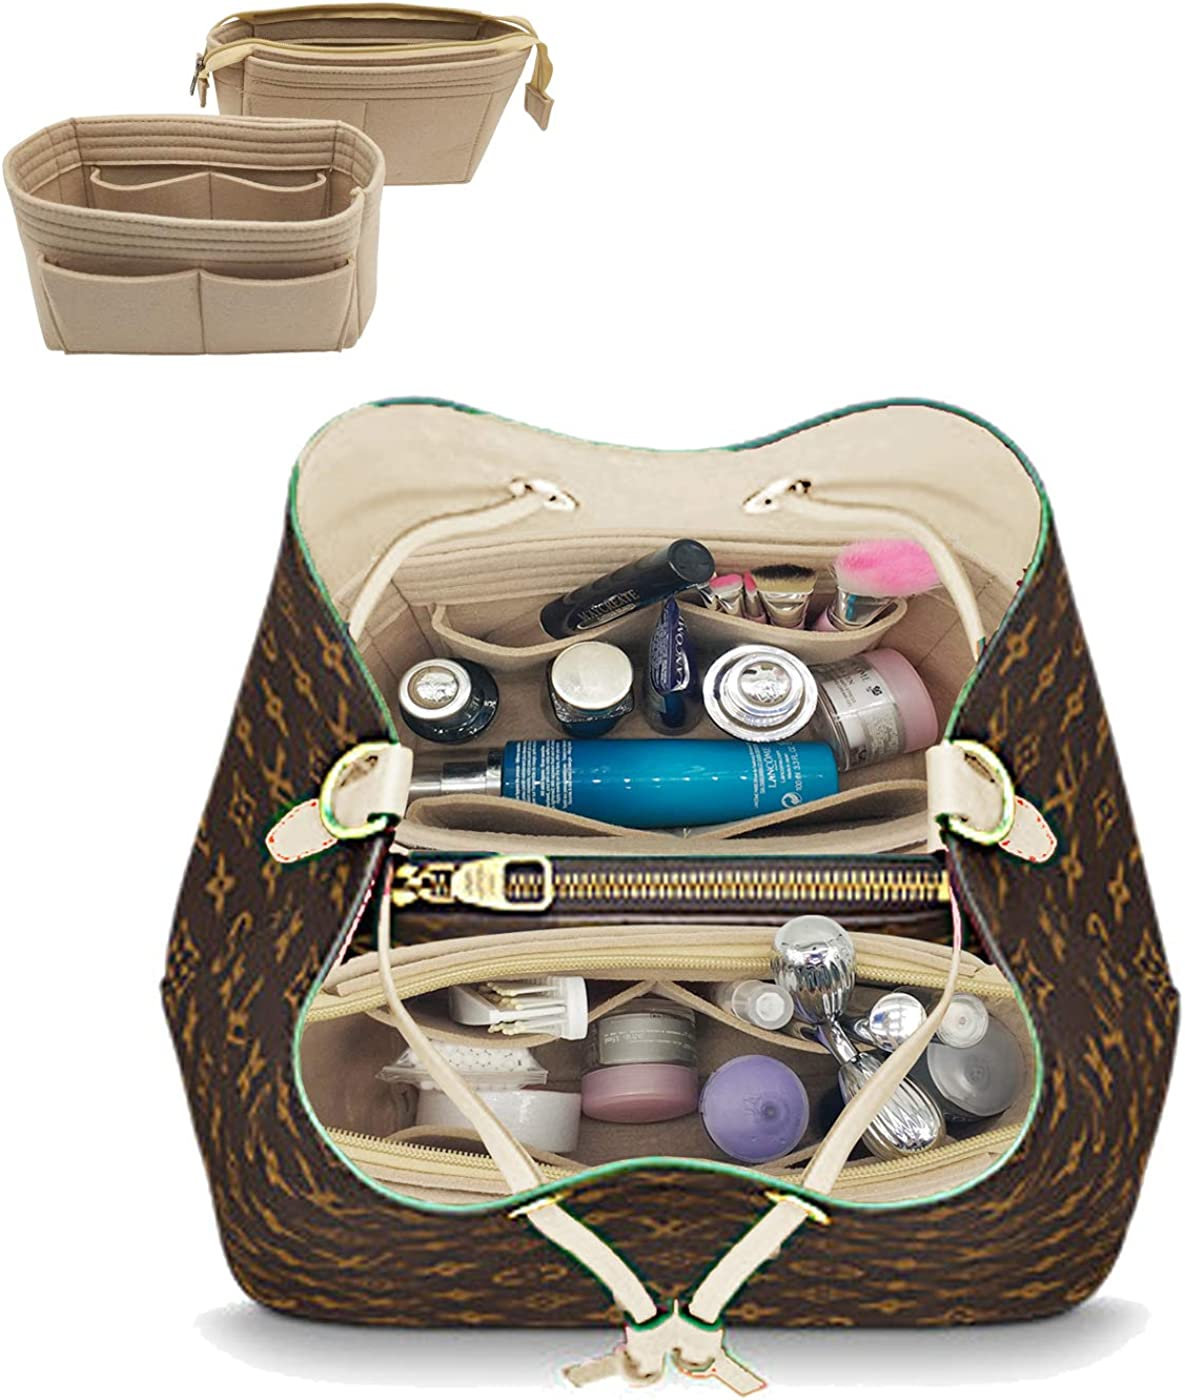 LEXSION Organizer,Bag Organizer,Insert purse organizer with 2 packs in one set fit LV NeoNoe Noé Series perfectly